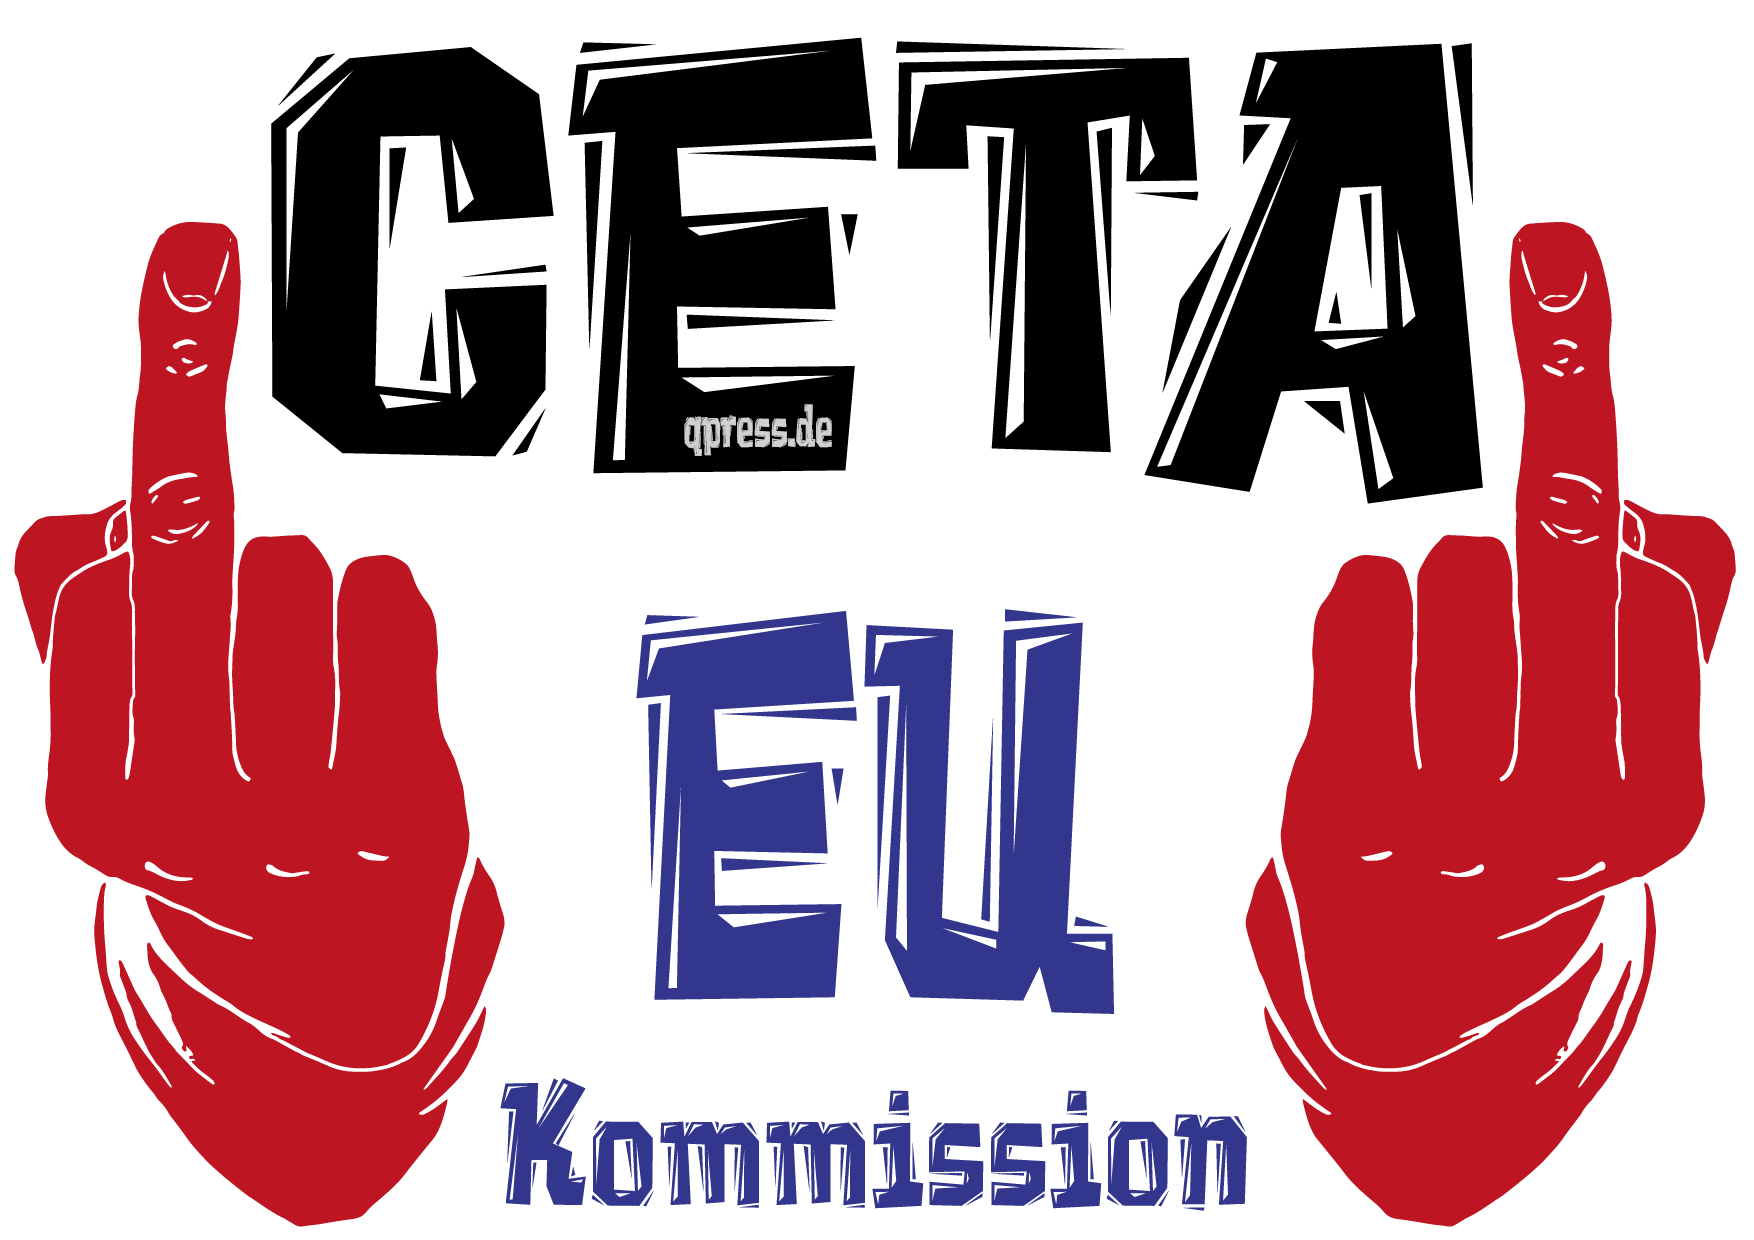 ceta_eu_kommission_handeslsabkommen_comprehensive_economic_and_trade_agreement_kritisches_netzwerk_freihandelsabkommen_ttip_canada_kanada_european_union